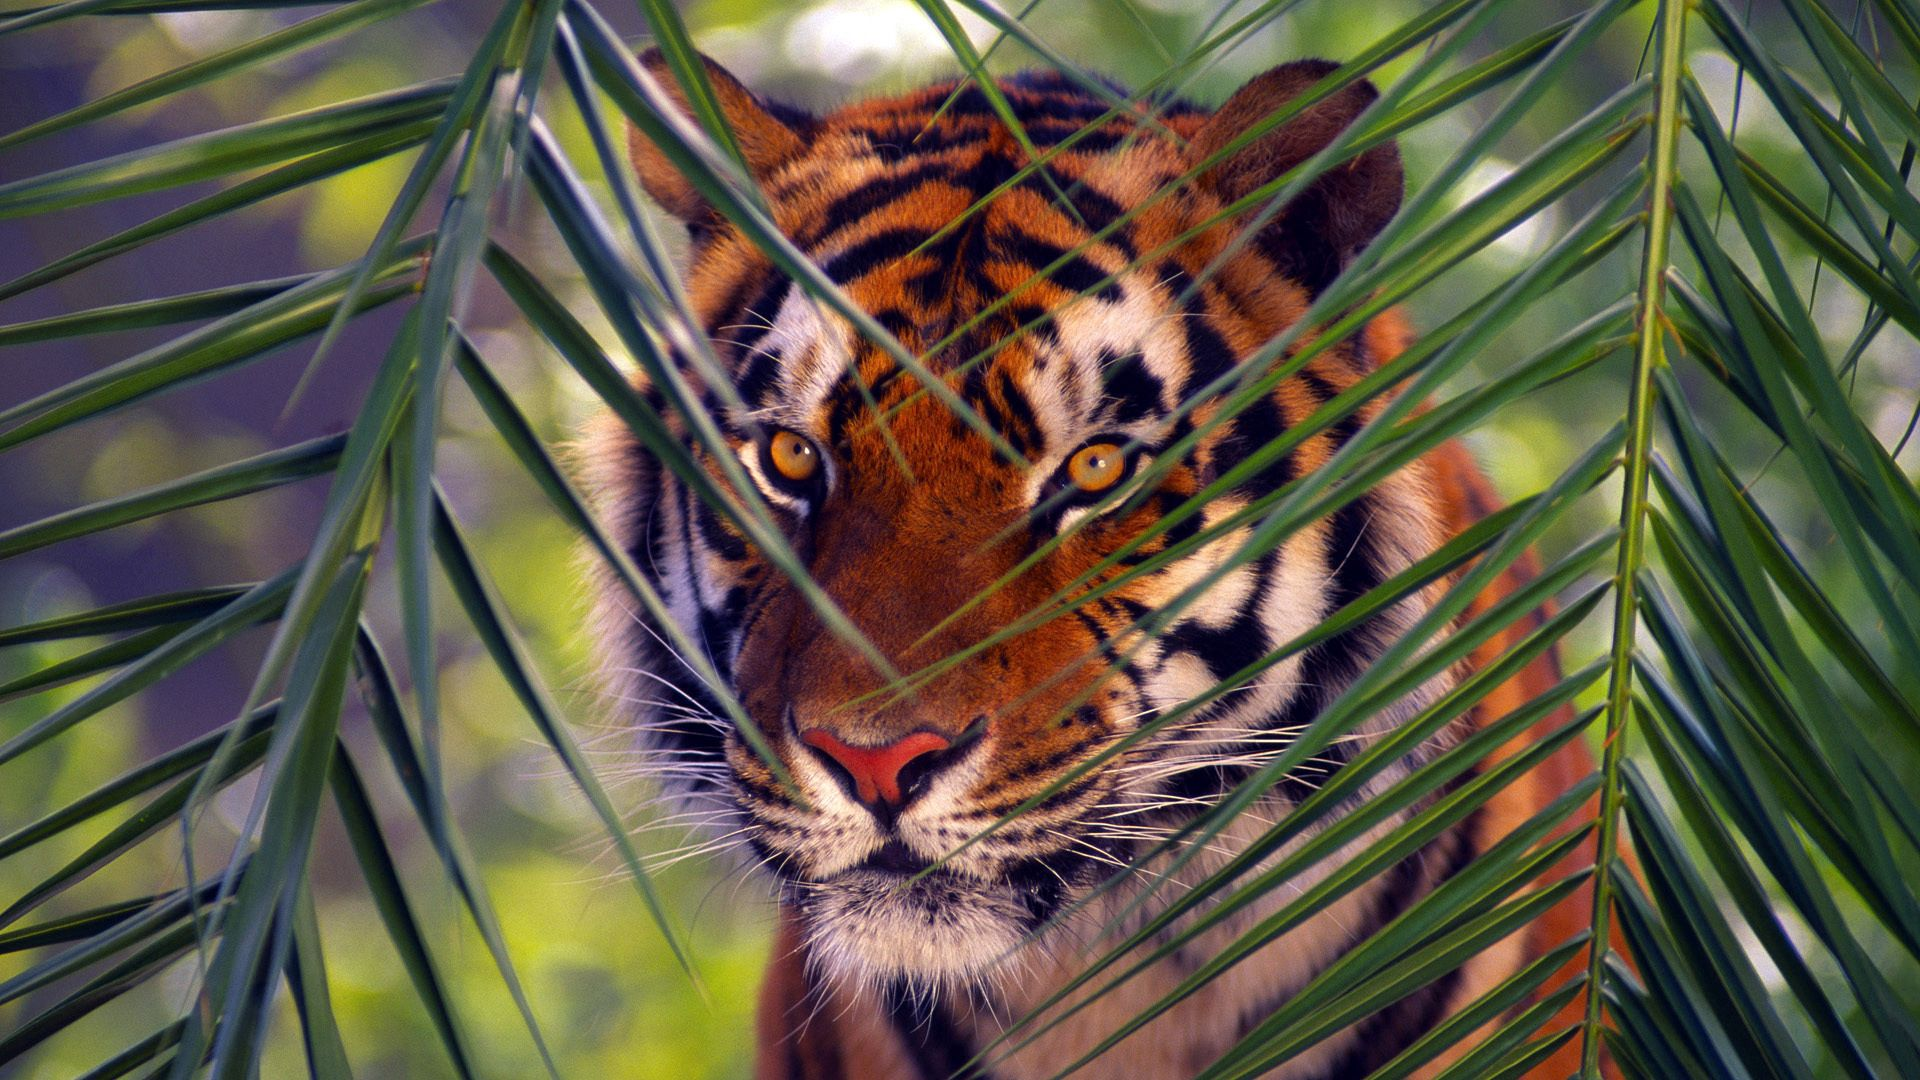 121246 download wallpaper Animals, Tiger, Branches, Branch, Leaves, Muzzle, Hunting, Hunt screensavers and pictures for free